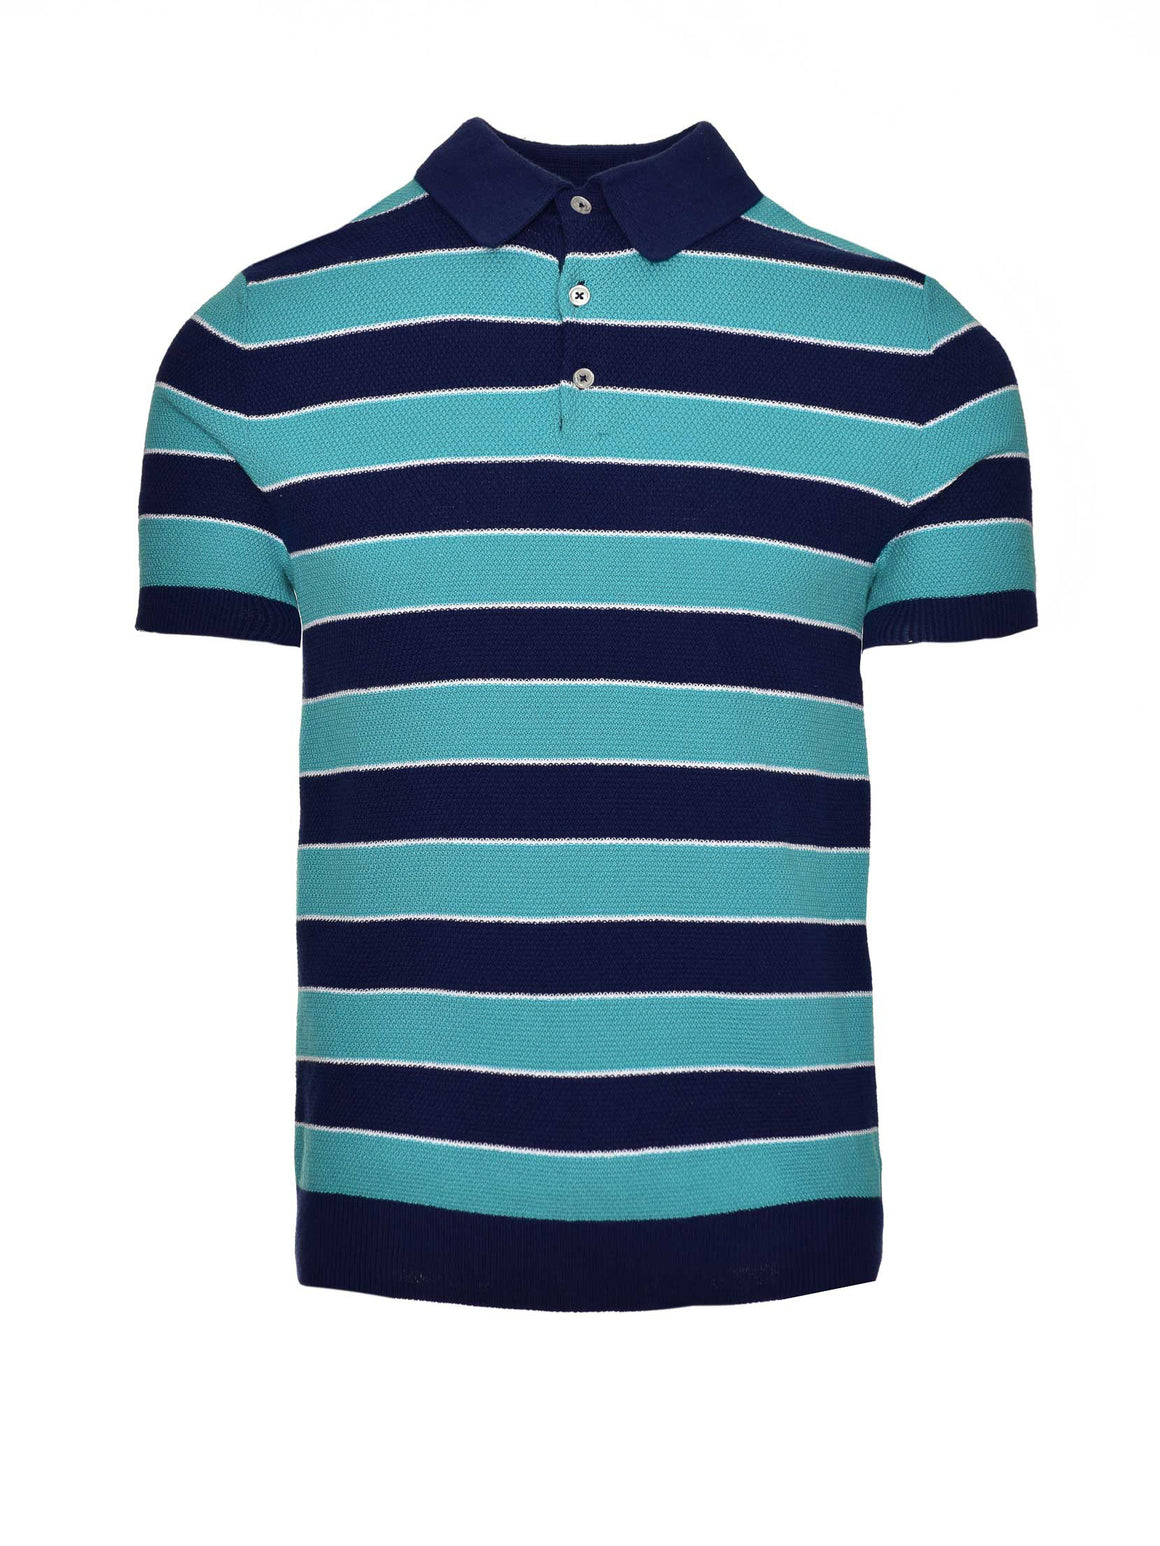 Stripe Polo - Navy & Teal